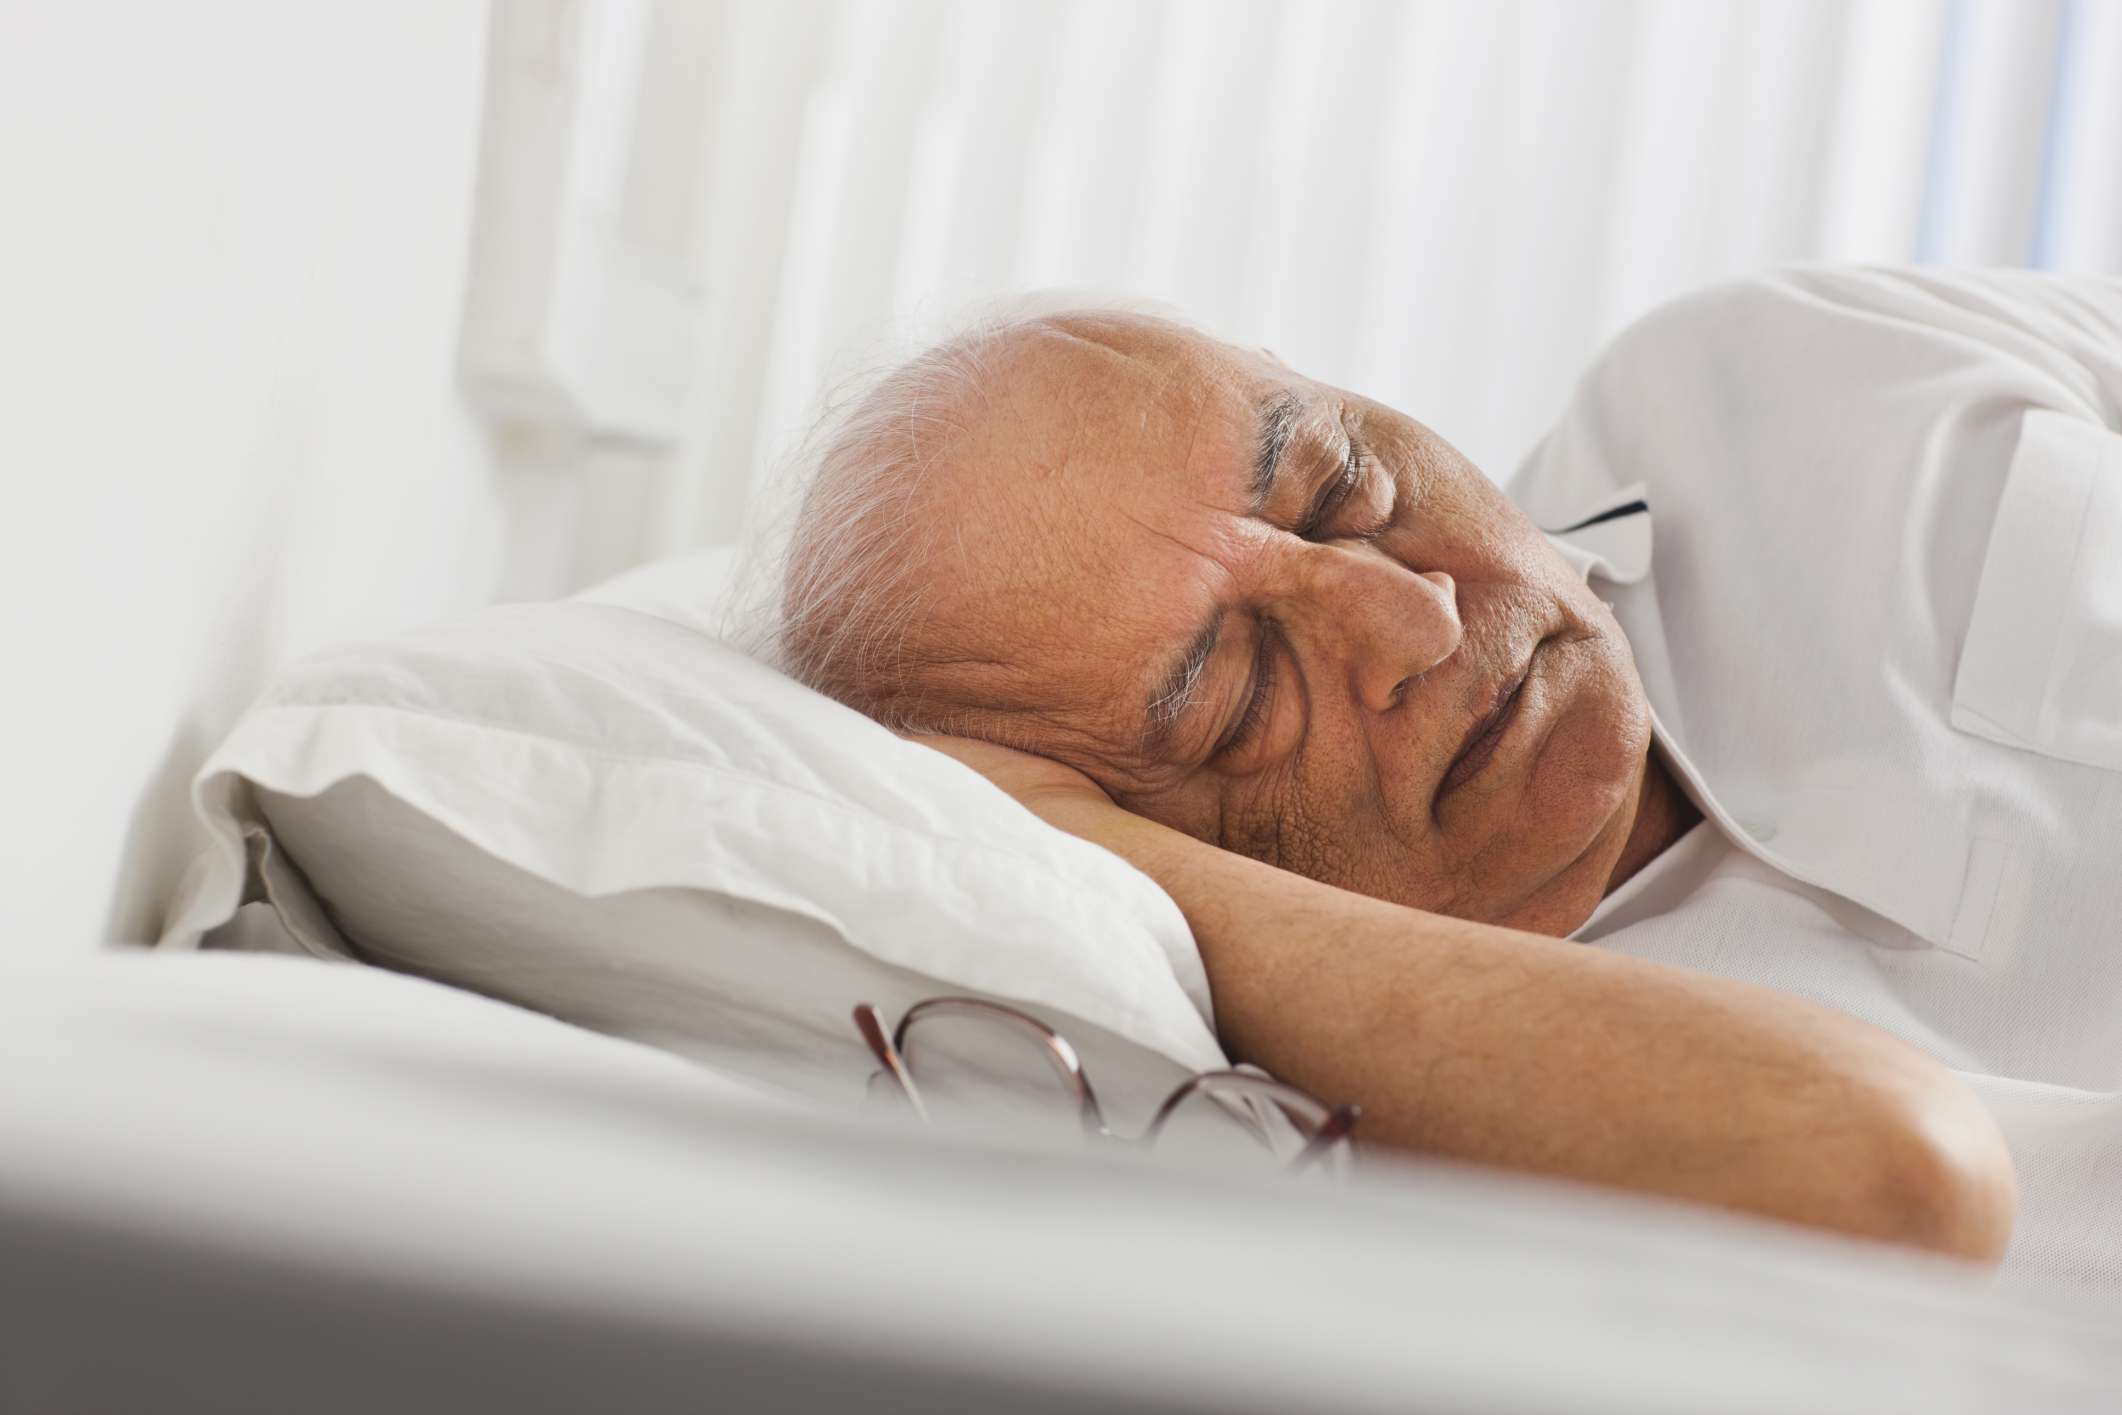 Mature man sleeping in bed next to a pair of glasses